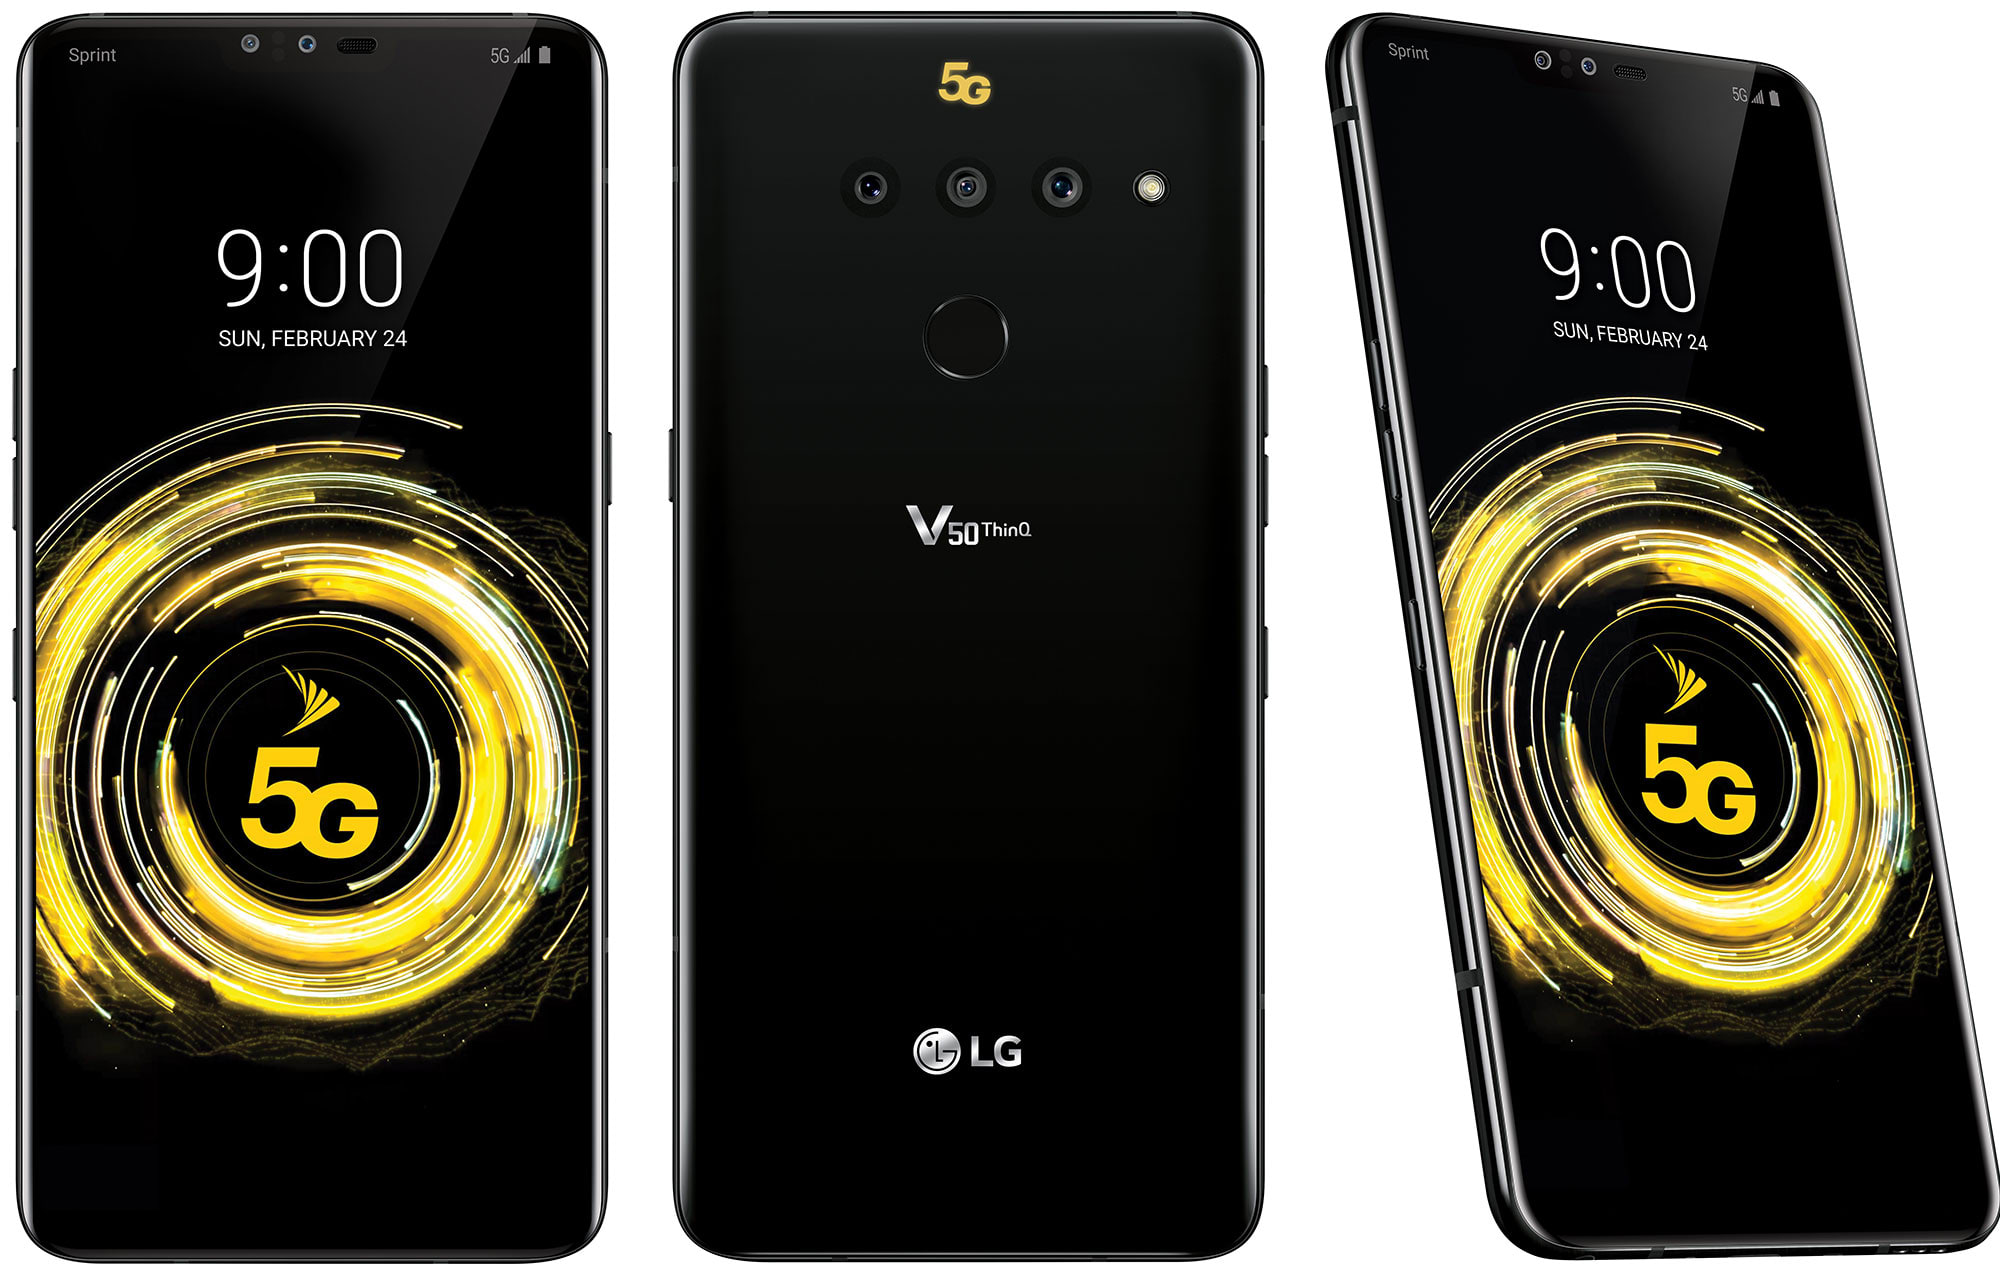 LG's first 5G phone is the V50 ThinQ